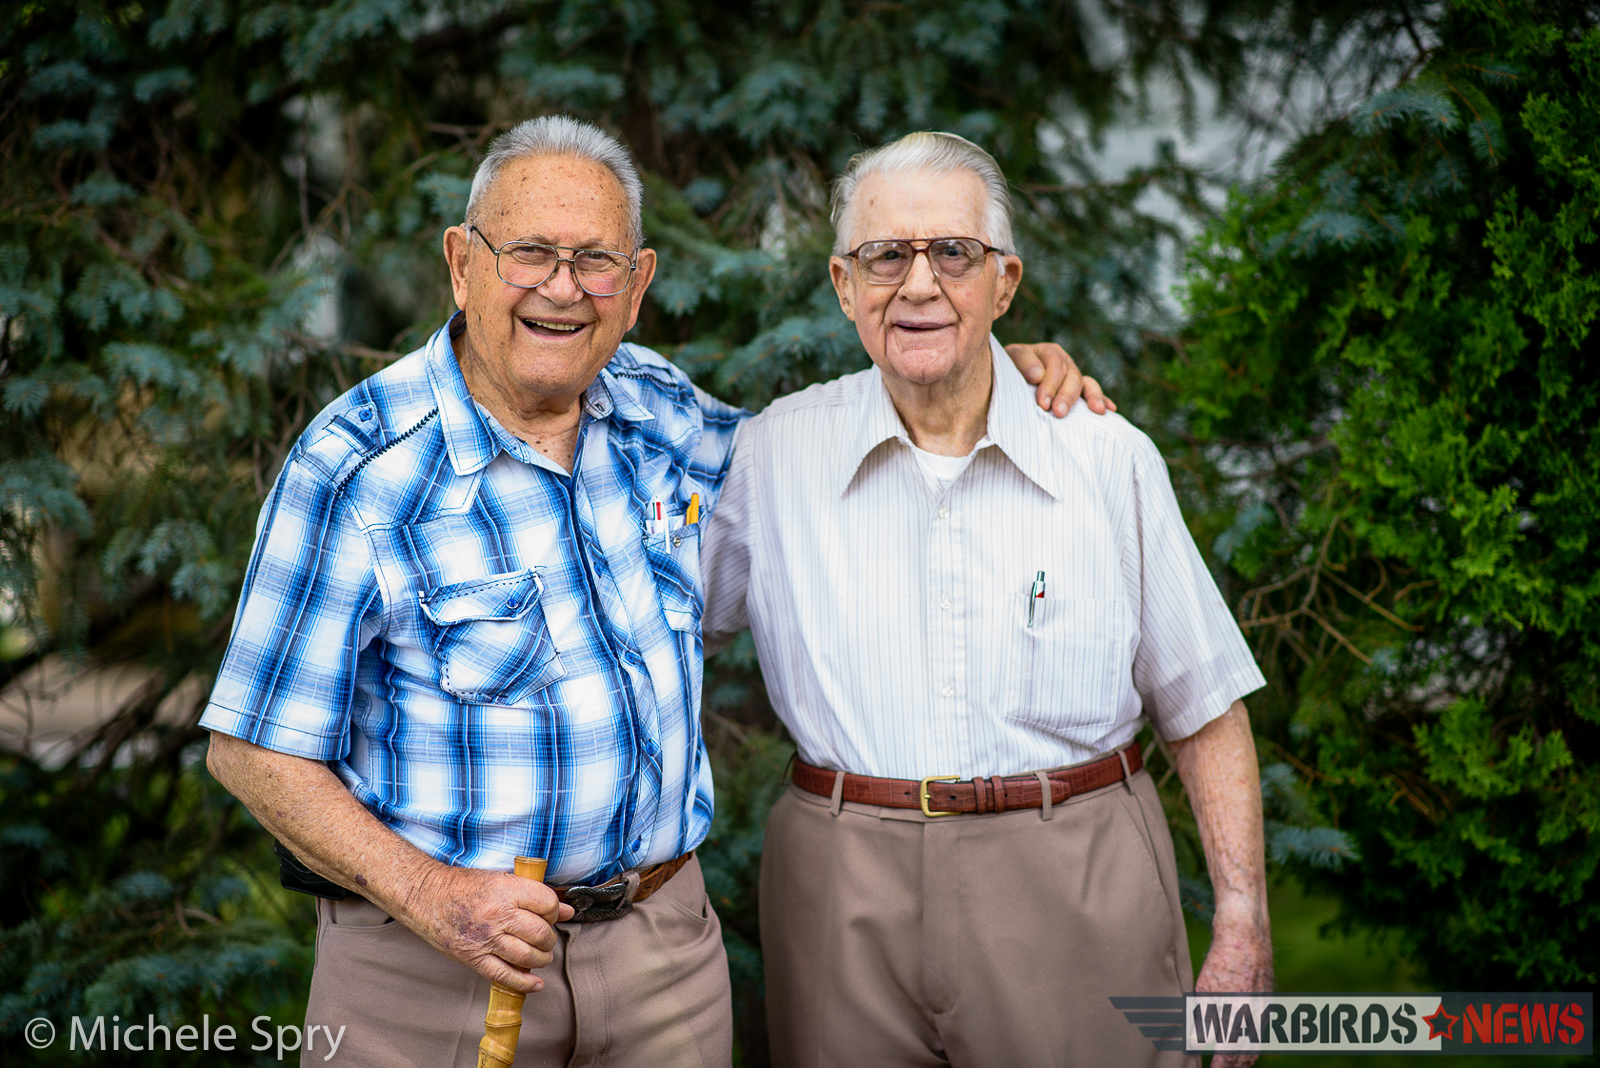 The two men 72 years later. (photo by Michele Spry)